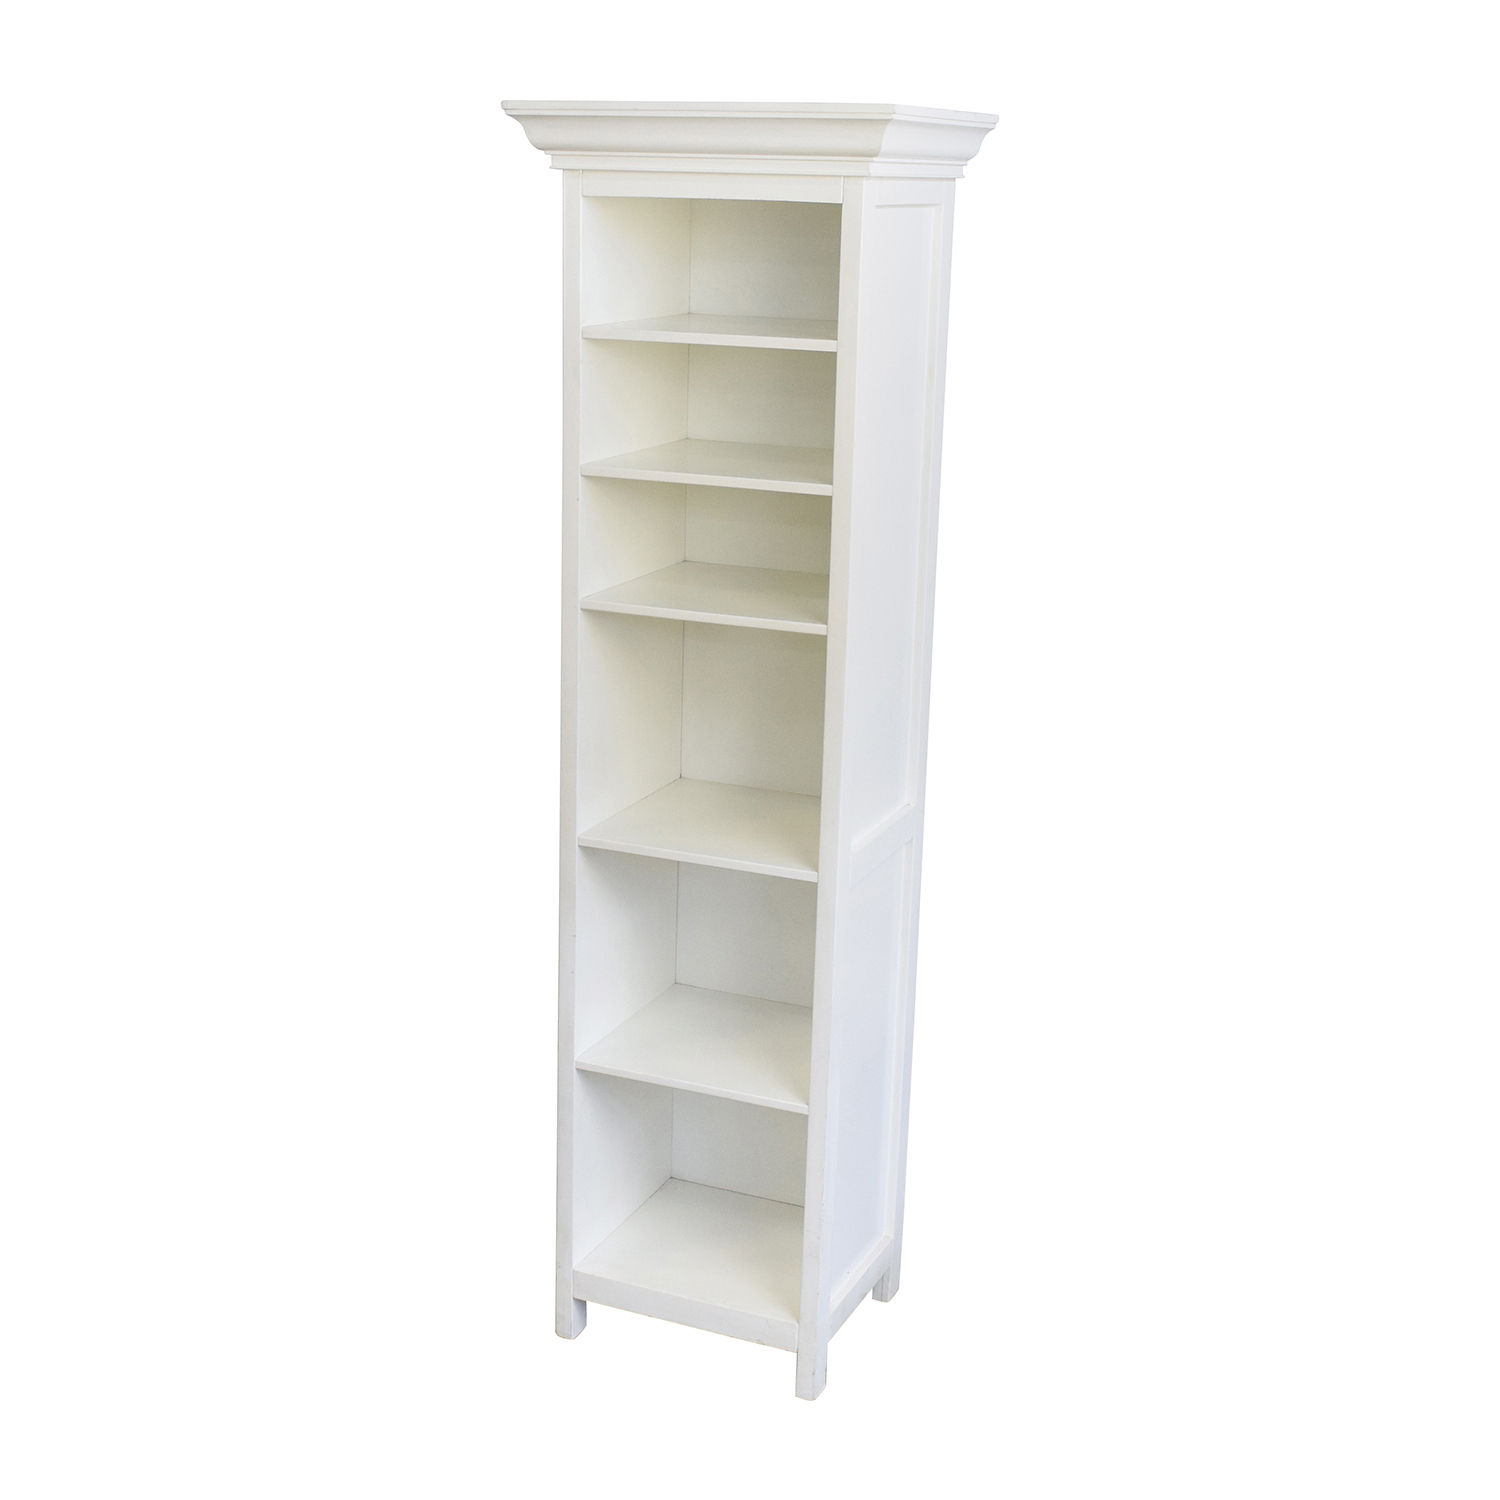 82% OFF   Pottery Barn Pottery Barn White Wood Linen Shelf / Storage